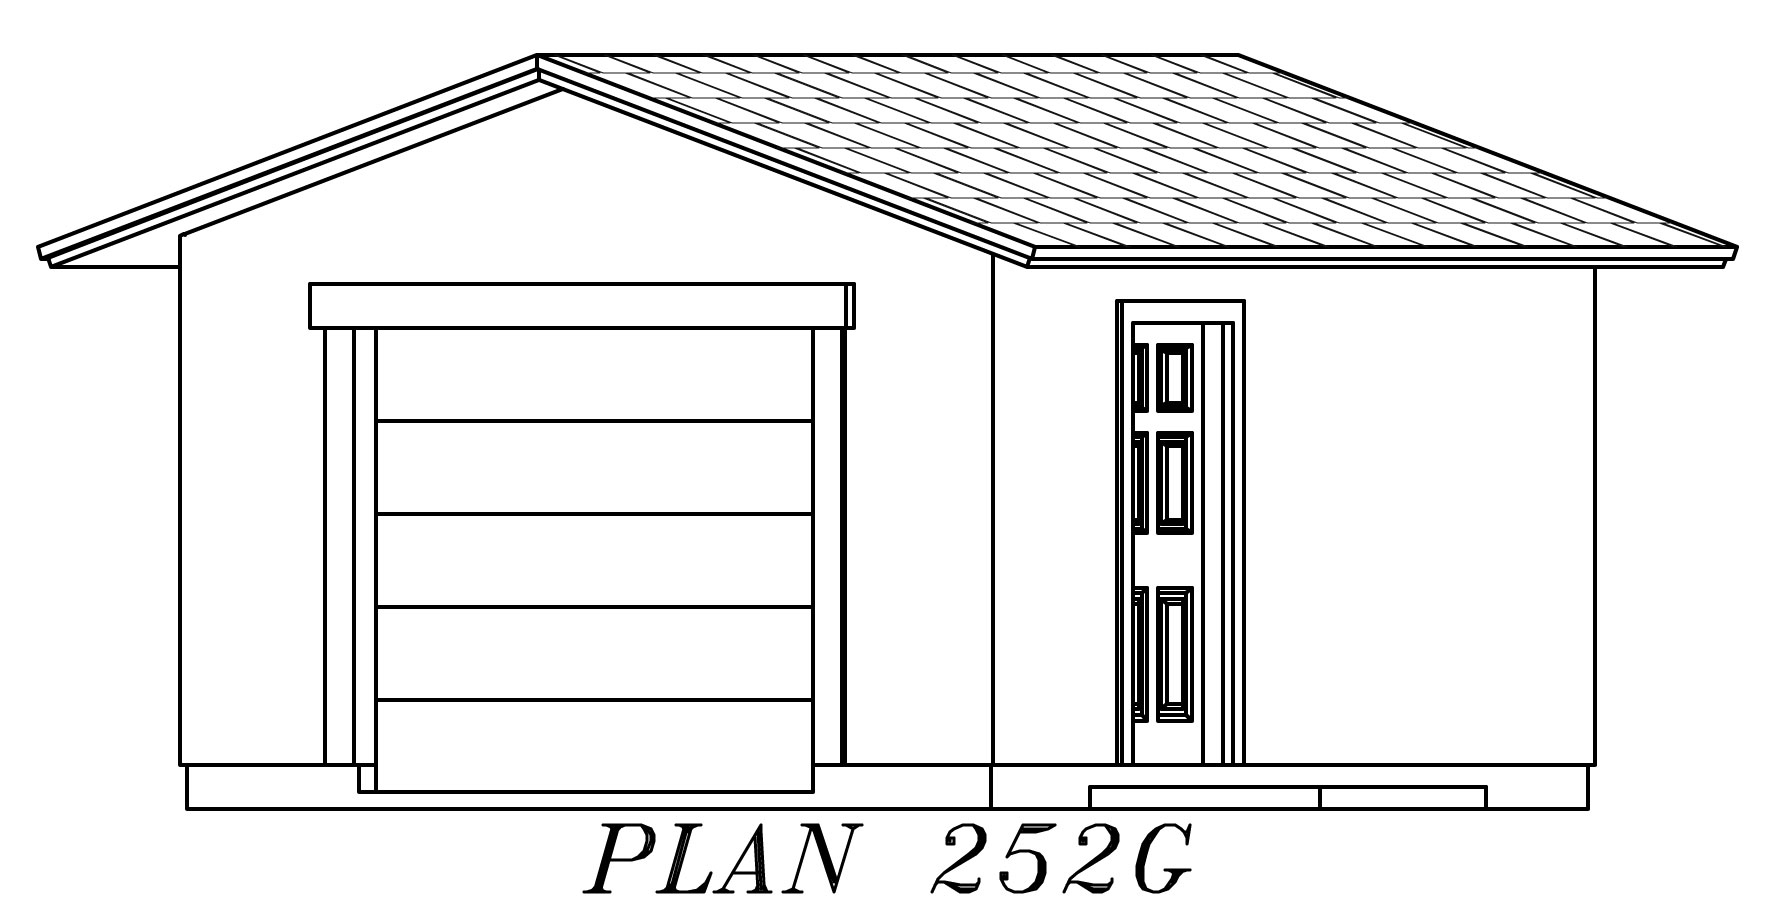 Garage plan stone veneer house plans home designs for Building a brick garage